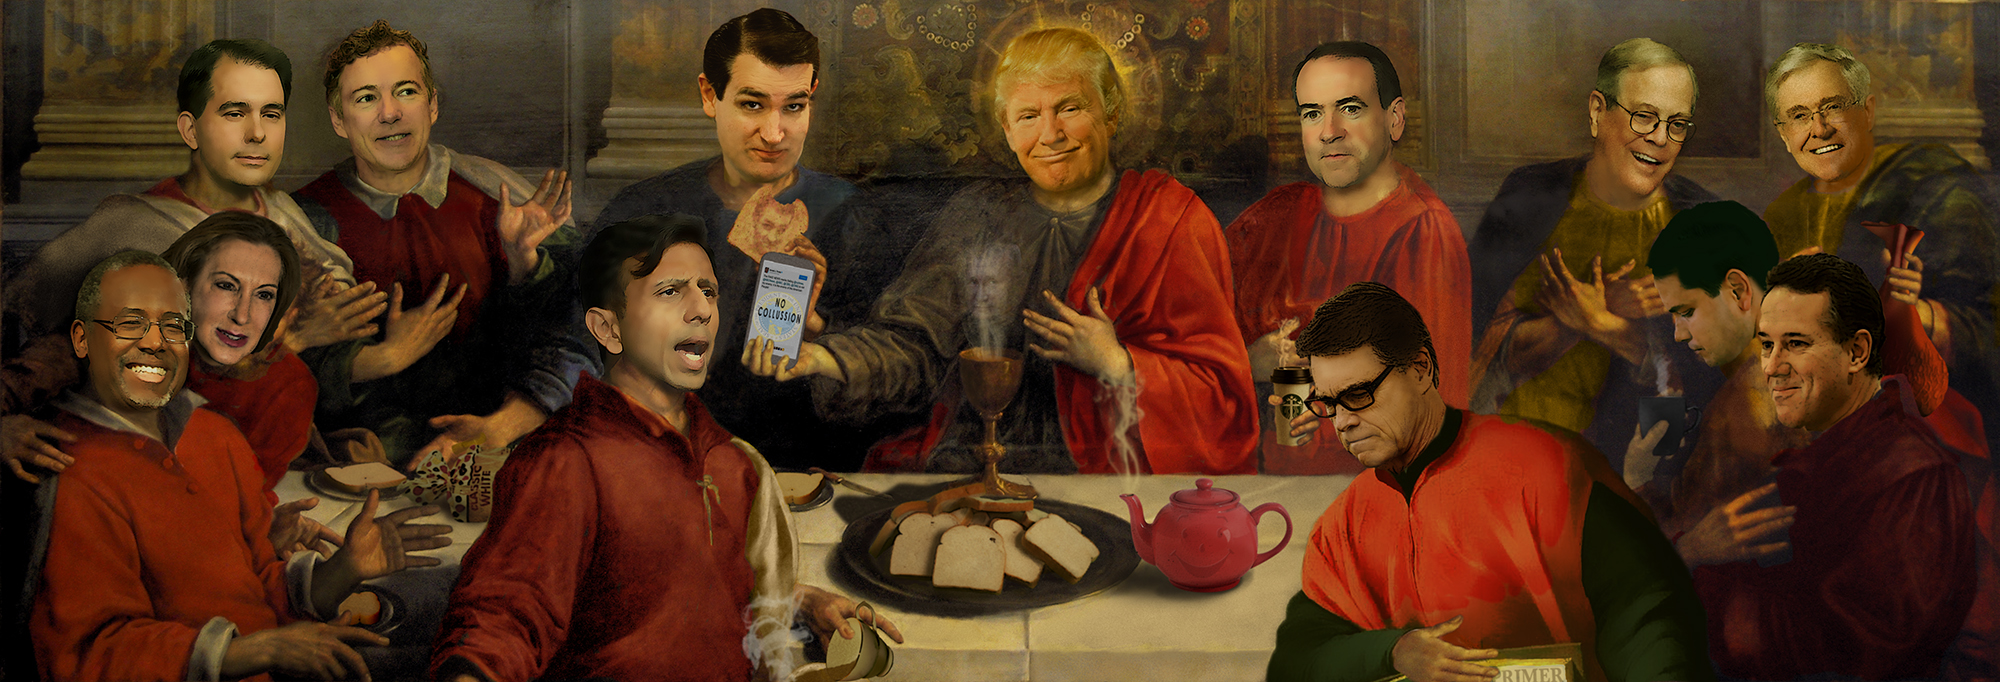 last supper for the tea party 2016.jpg